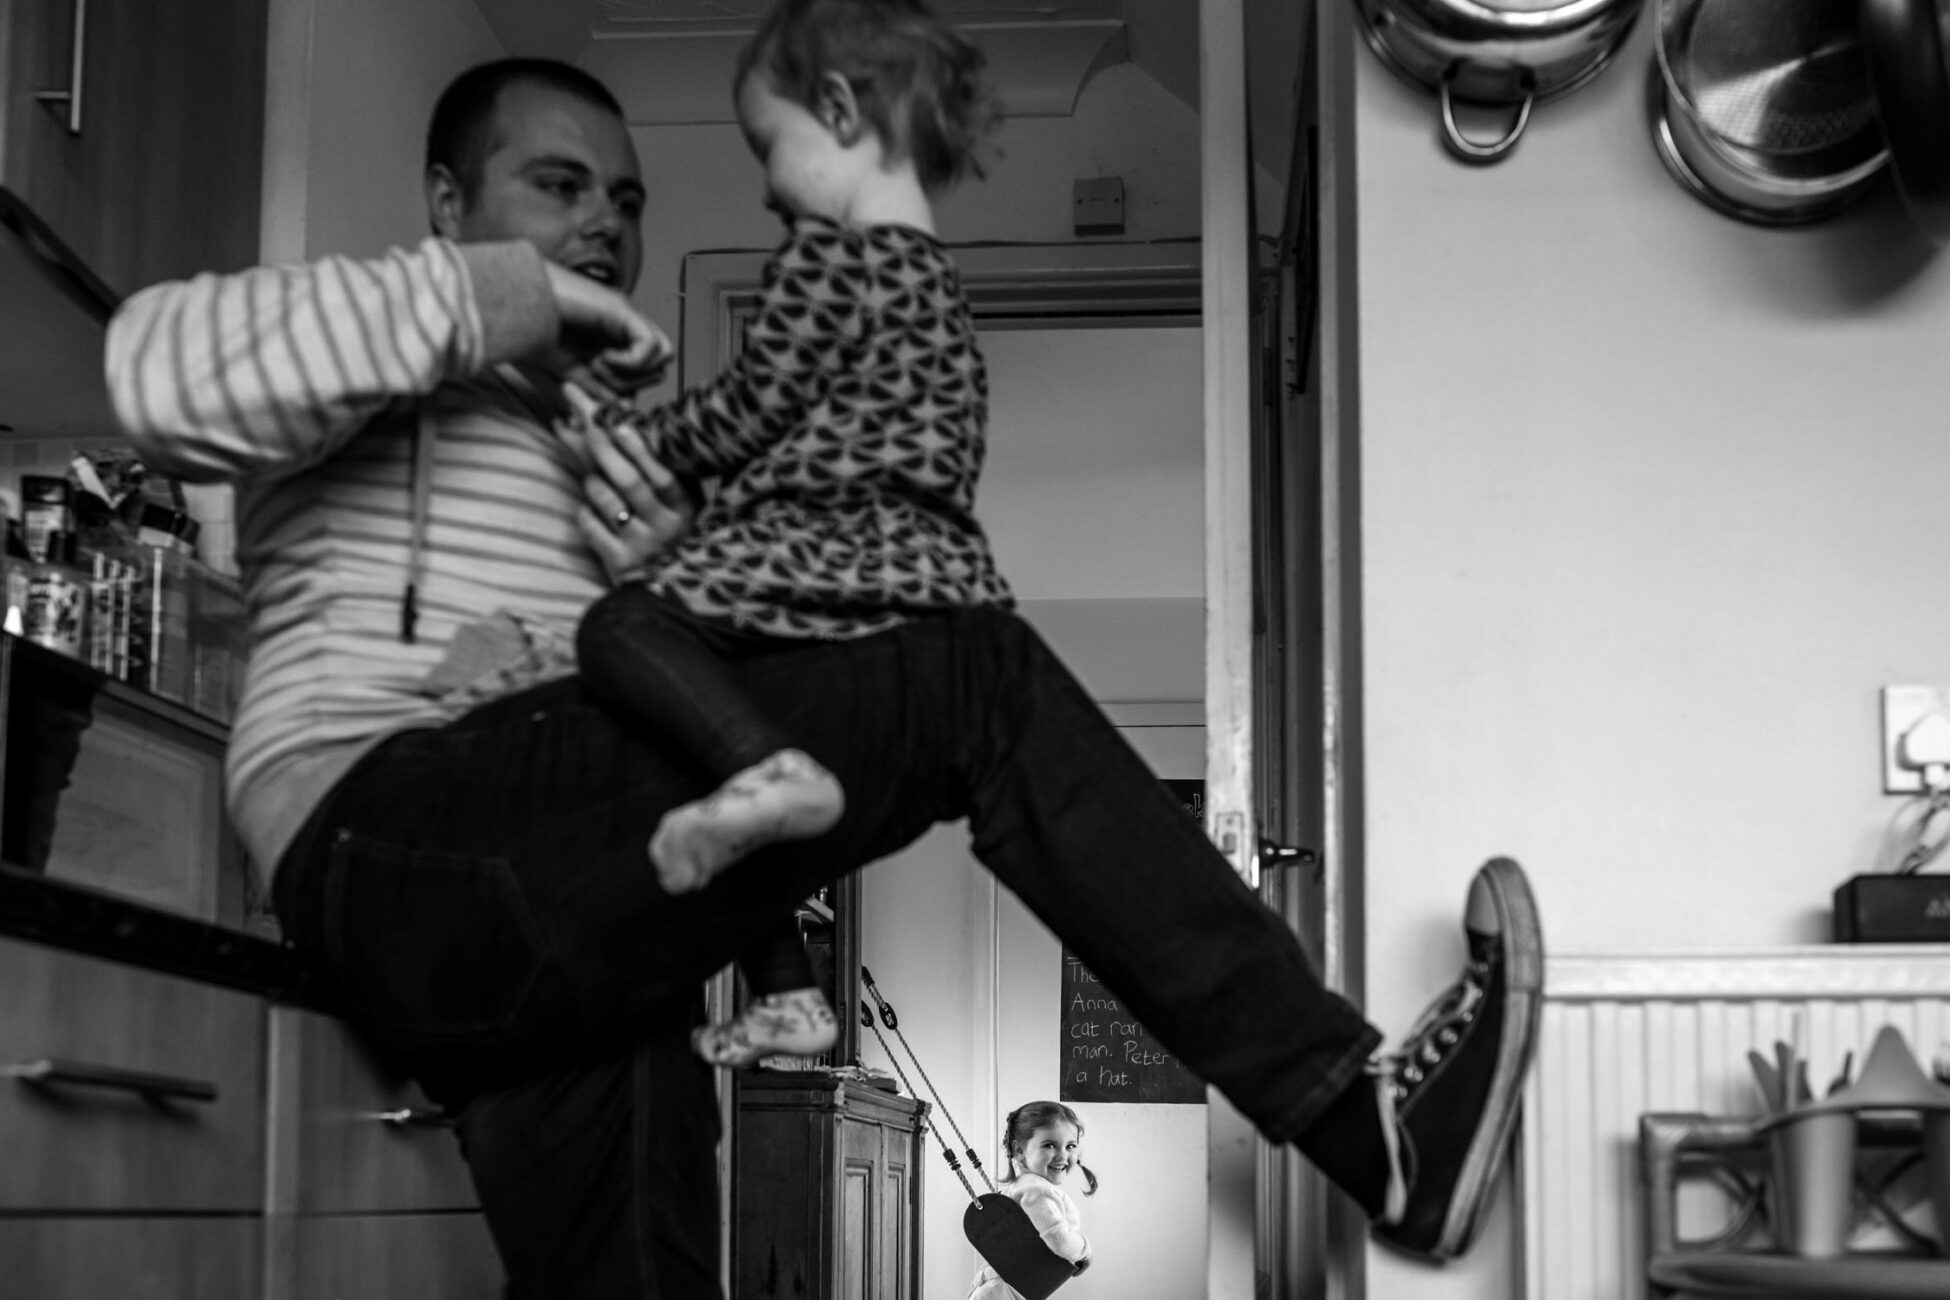 in the foreground dad playing with his little daughter while you can see in the background the other daughter swinging on a indoor swing